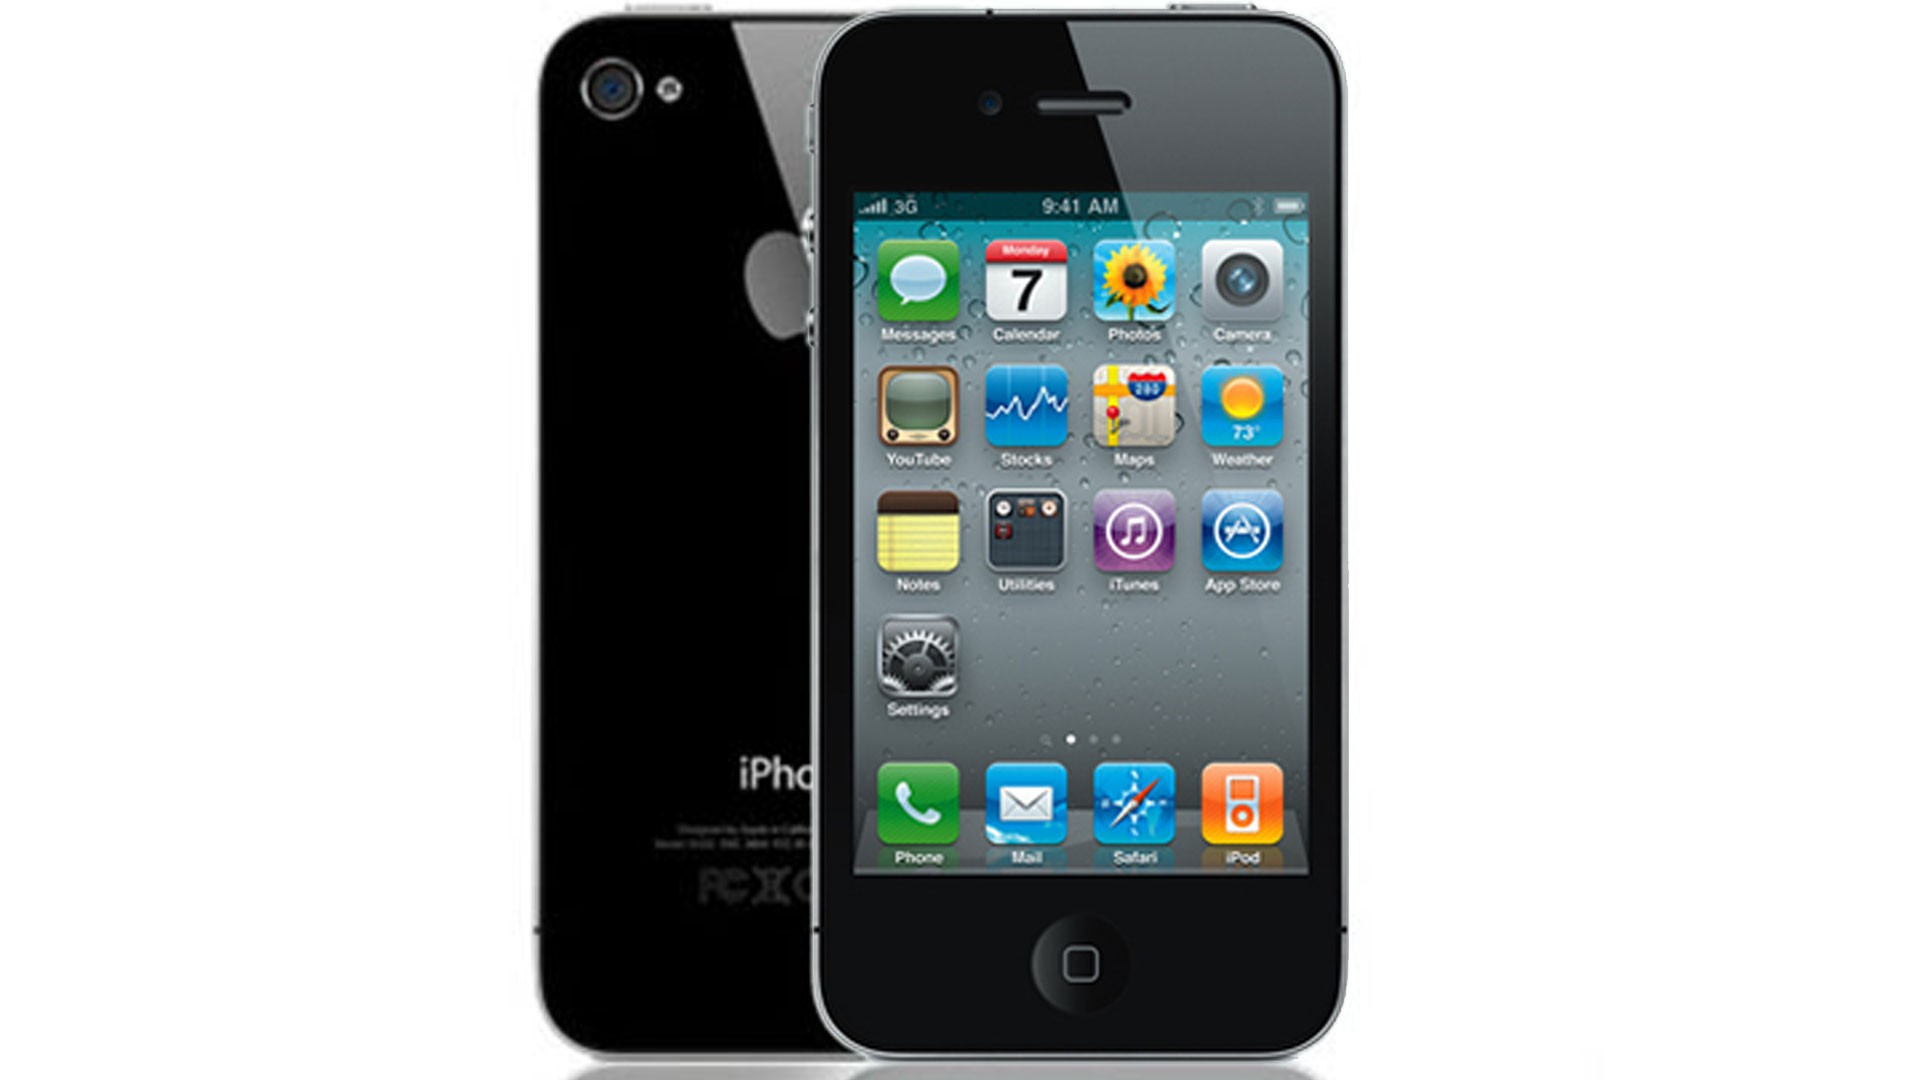 apple iphone 4s 8gb for att wireless in black good. Black Bedroom Furniture Sets. Home Design Ideas